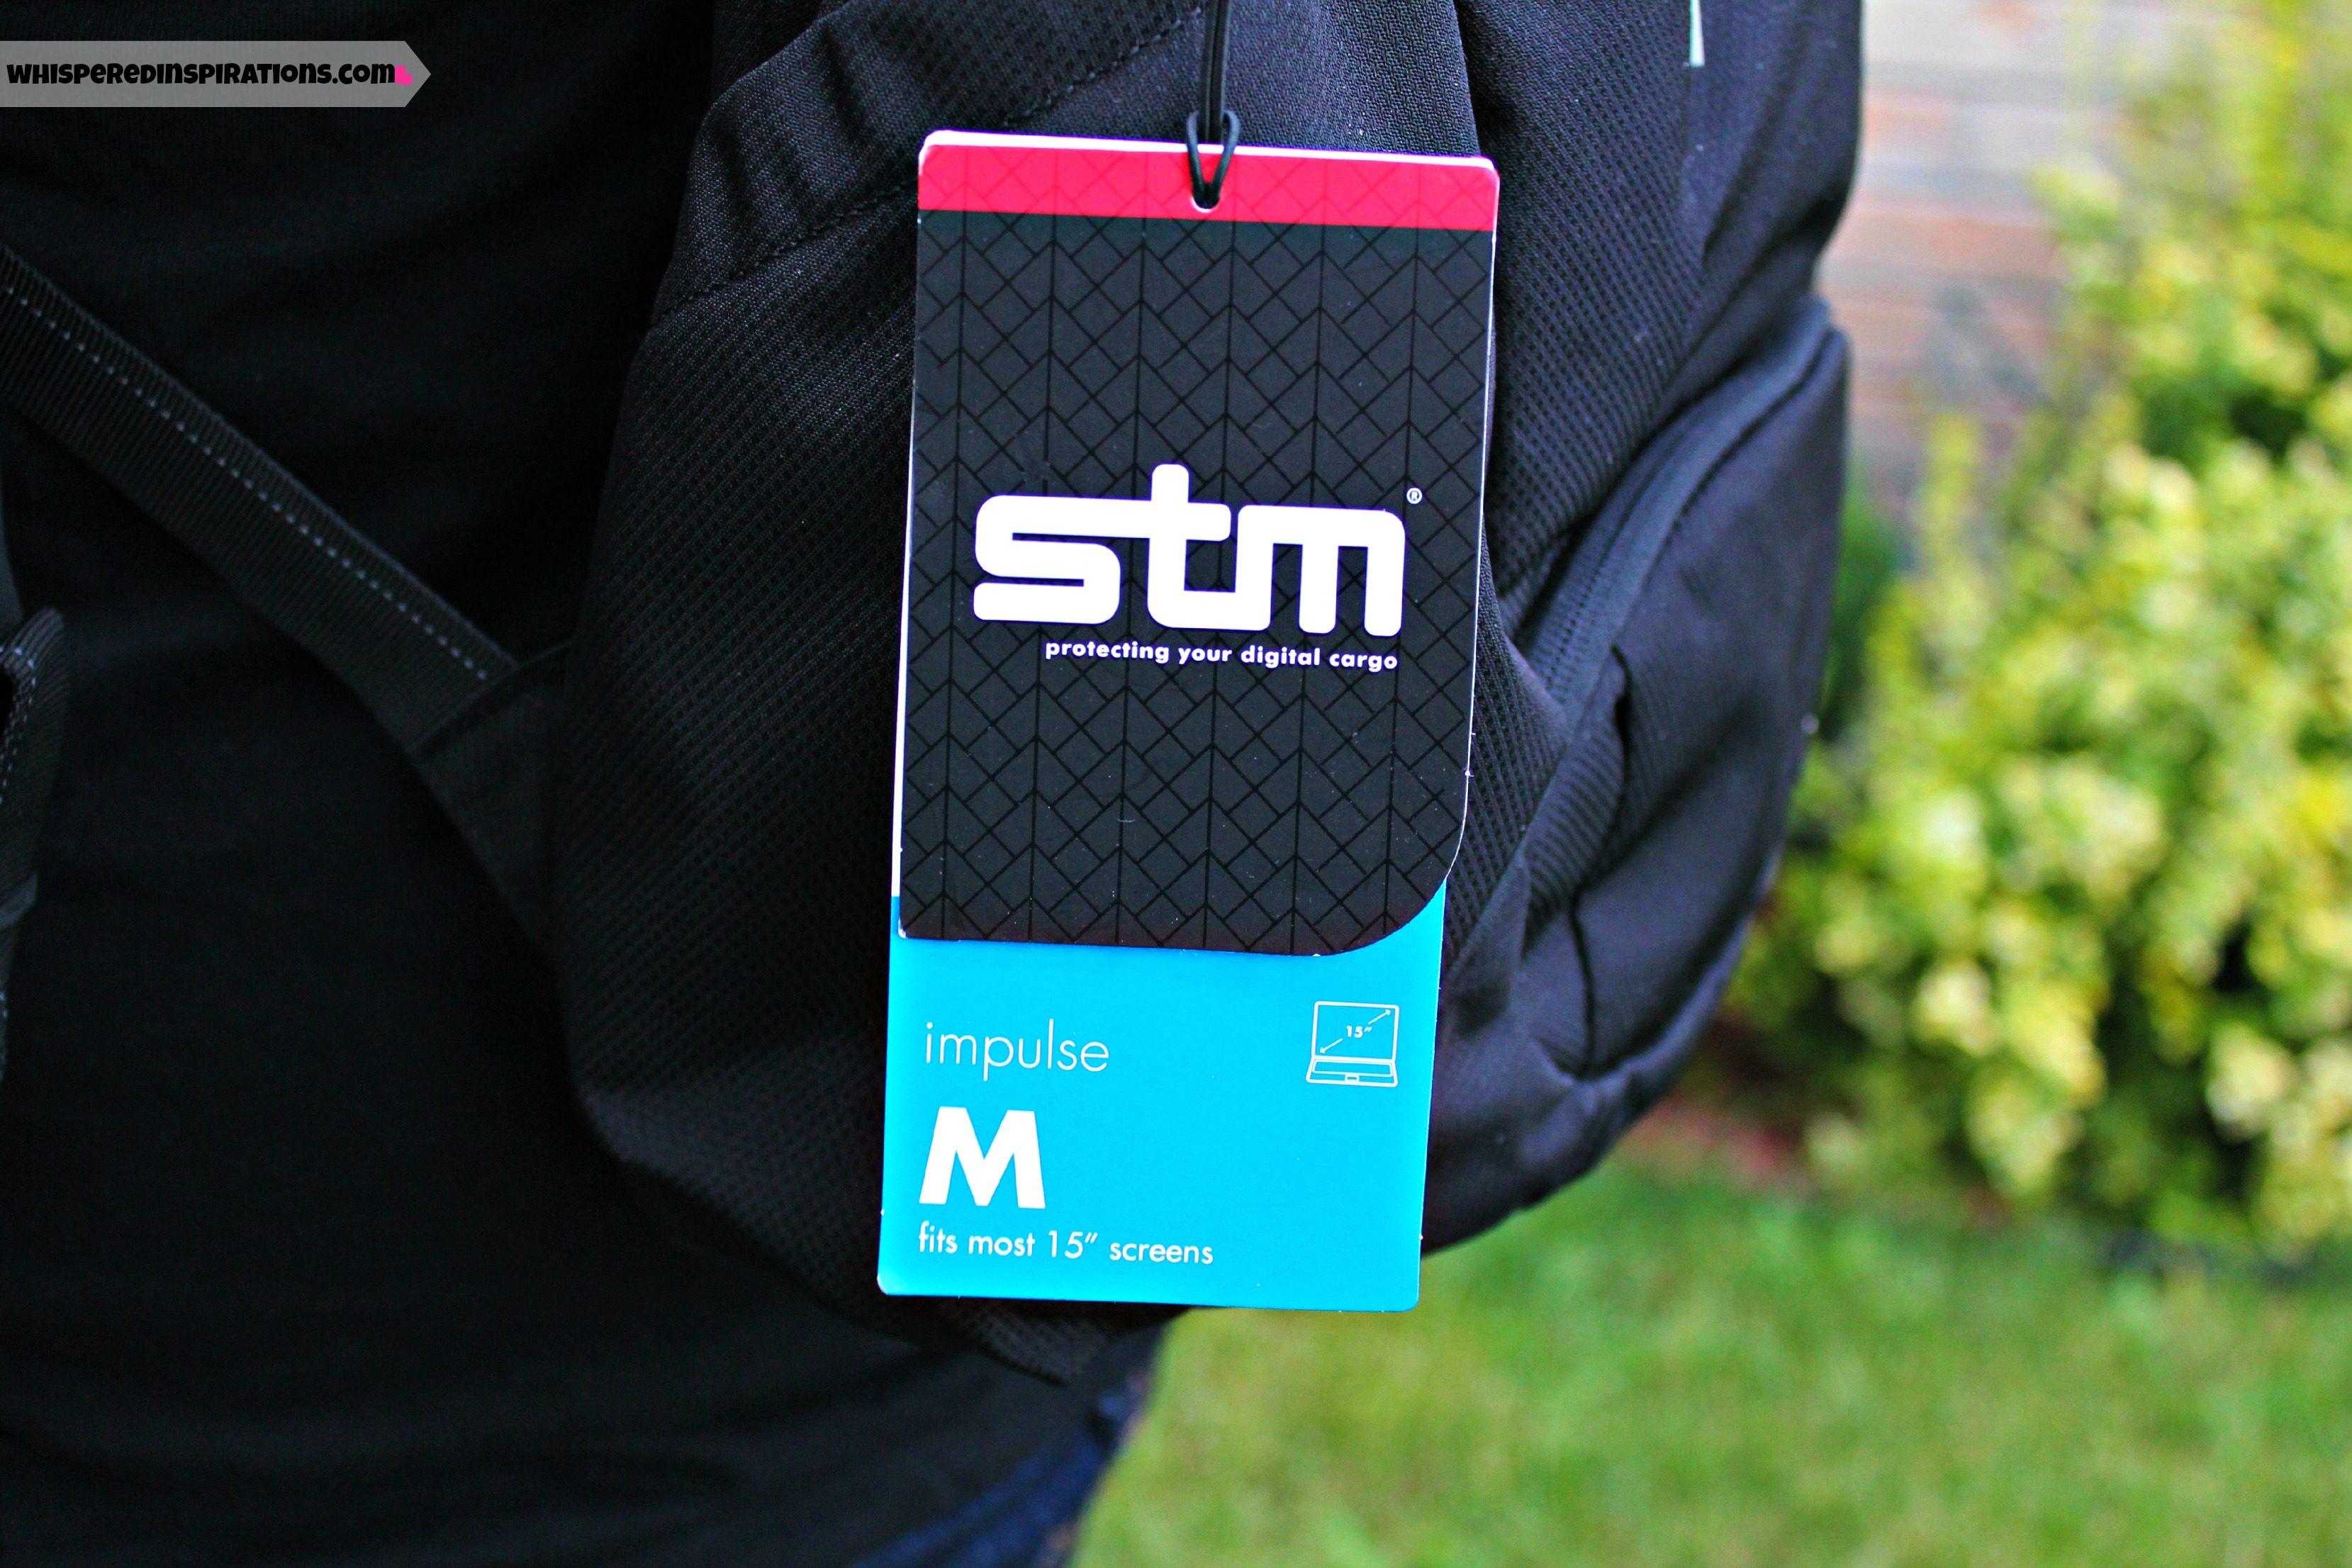 STM Bags Laptop Backpacks and Cable Wraps: They Will Make Your Life Easier and More Accessible! #technology